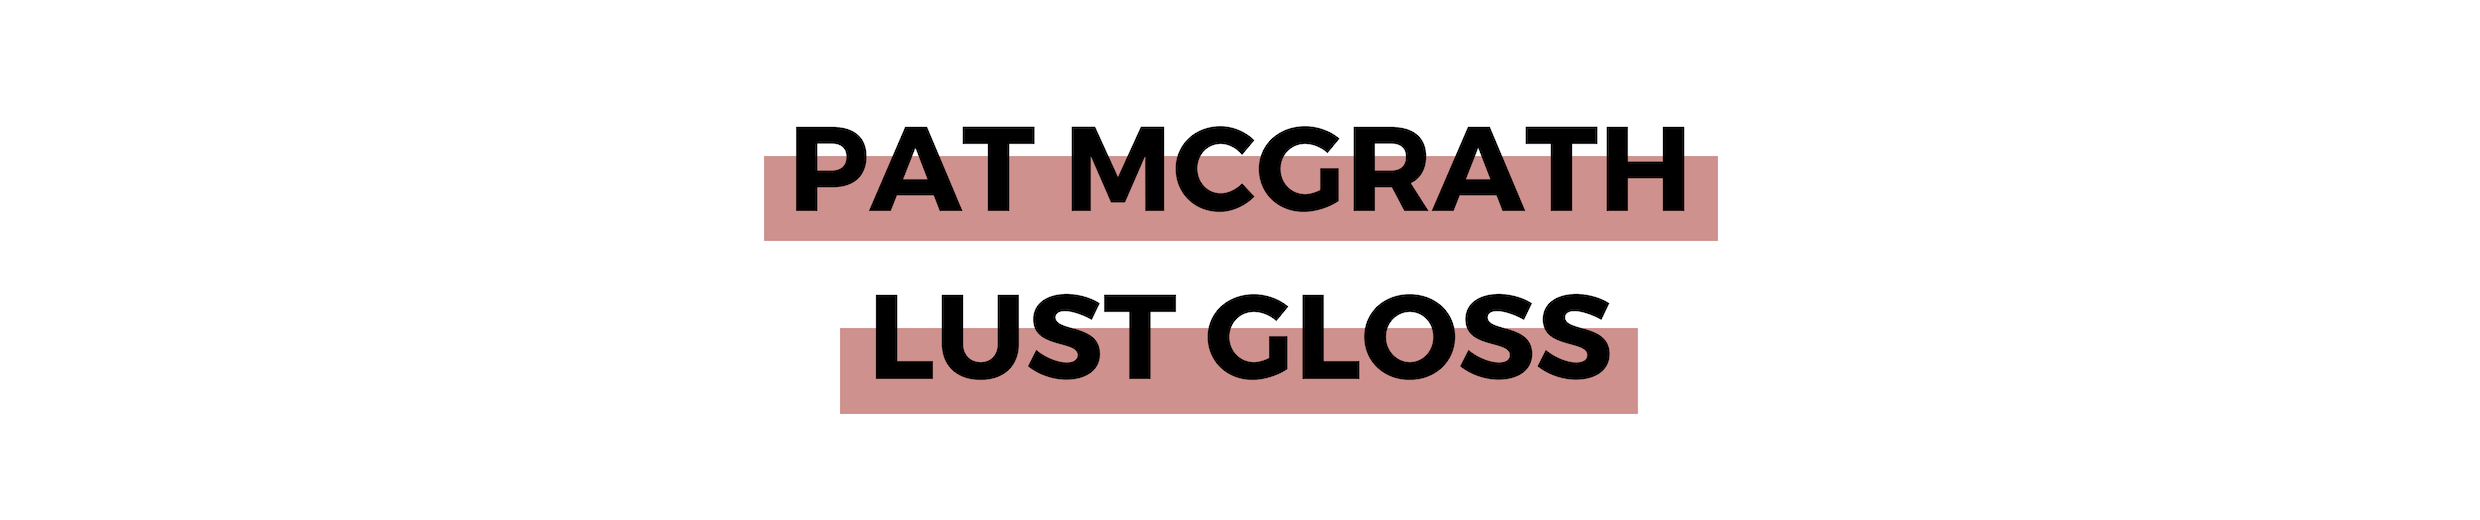 PAT MCGRATH LUST GLOSS.png